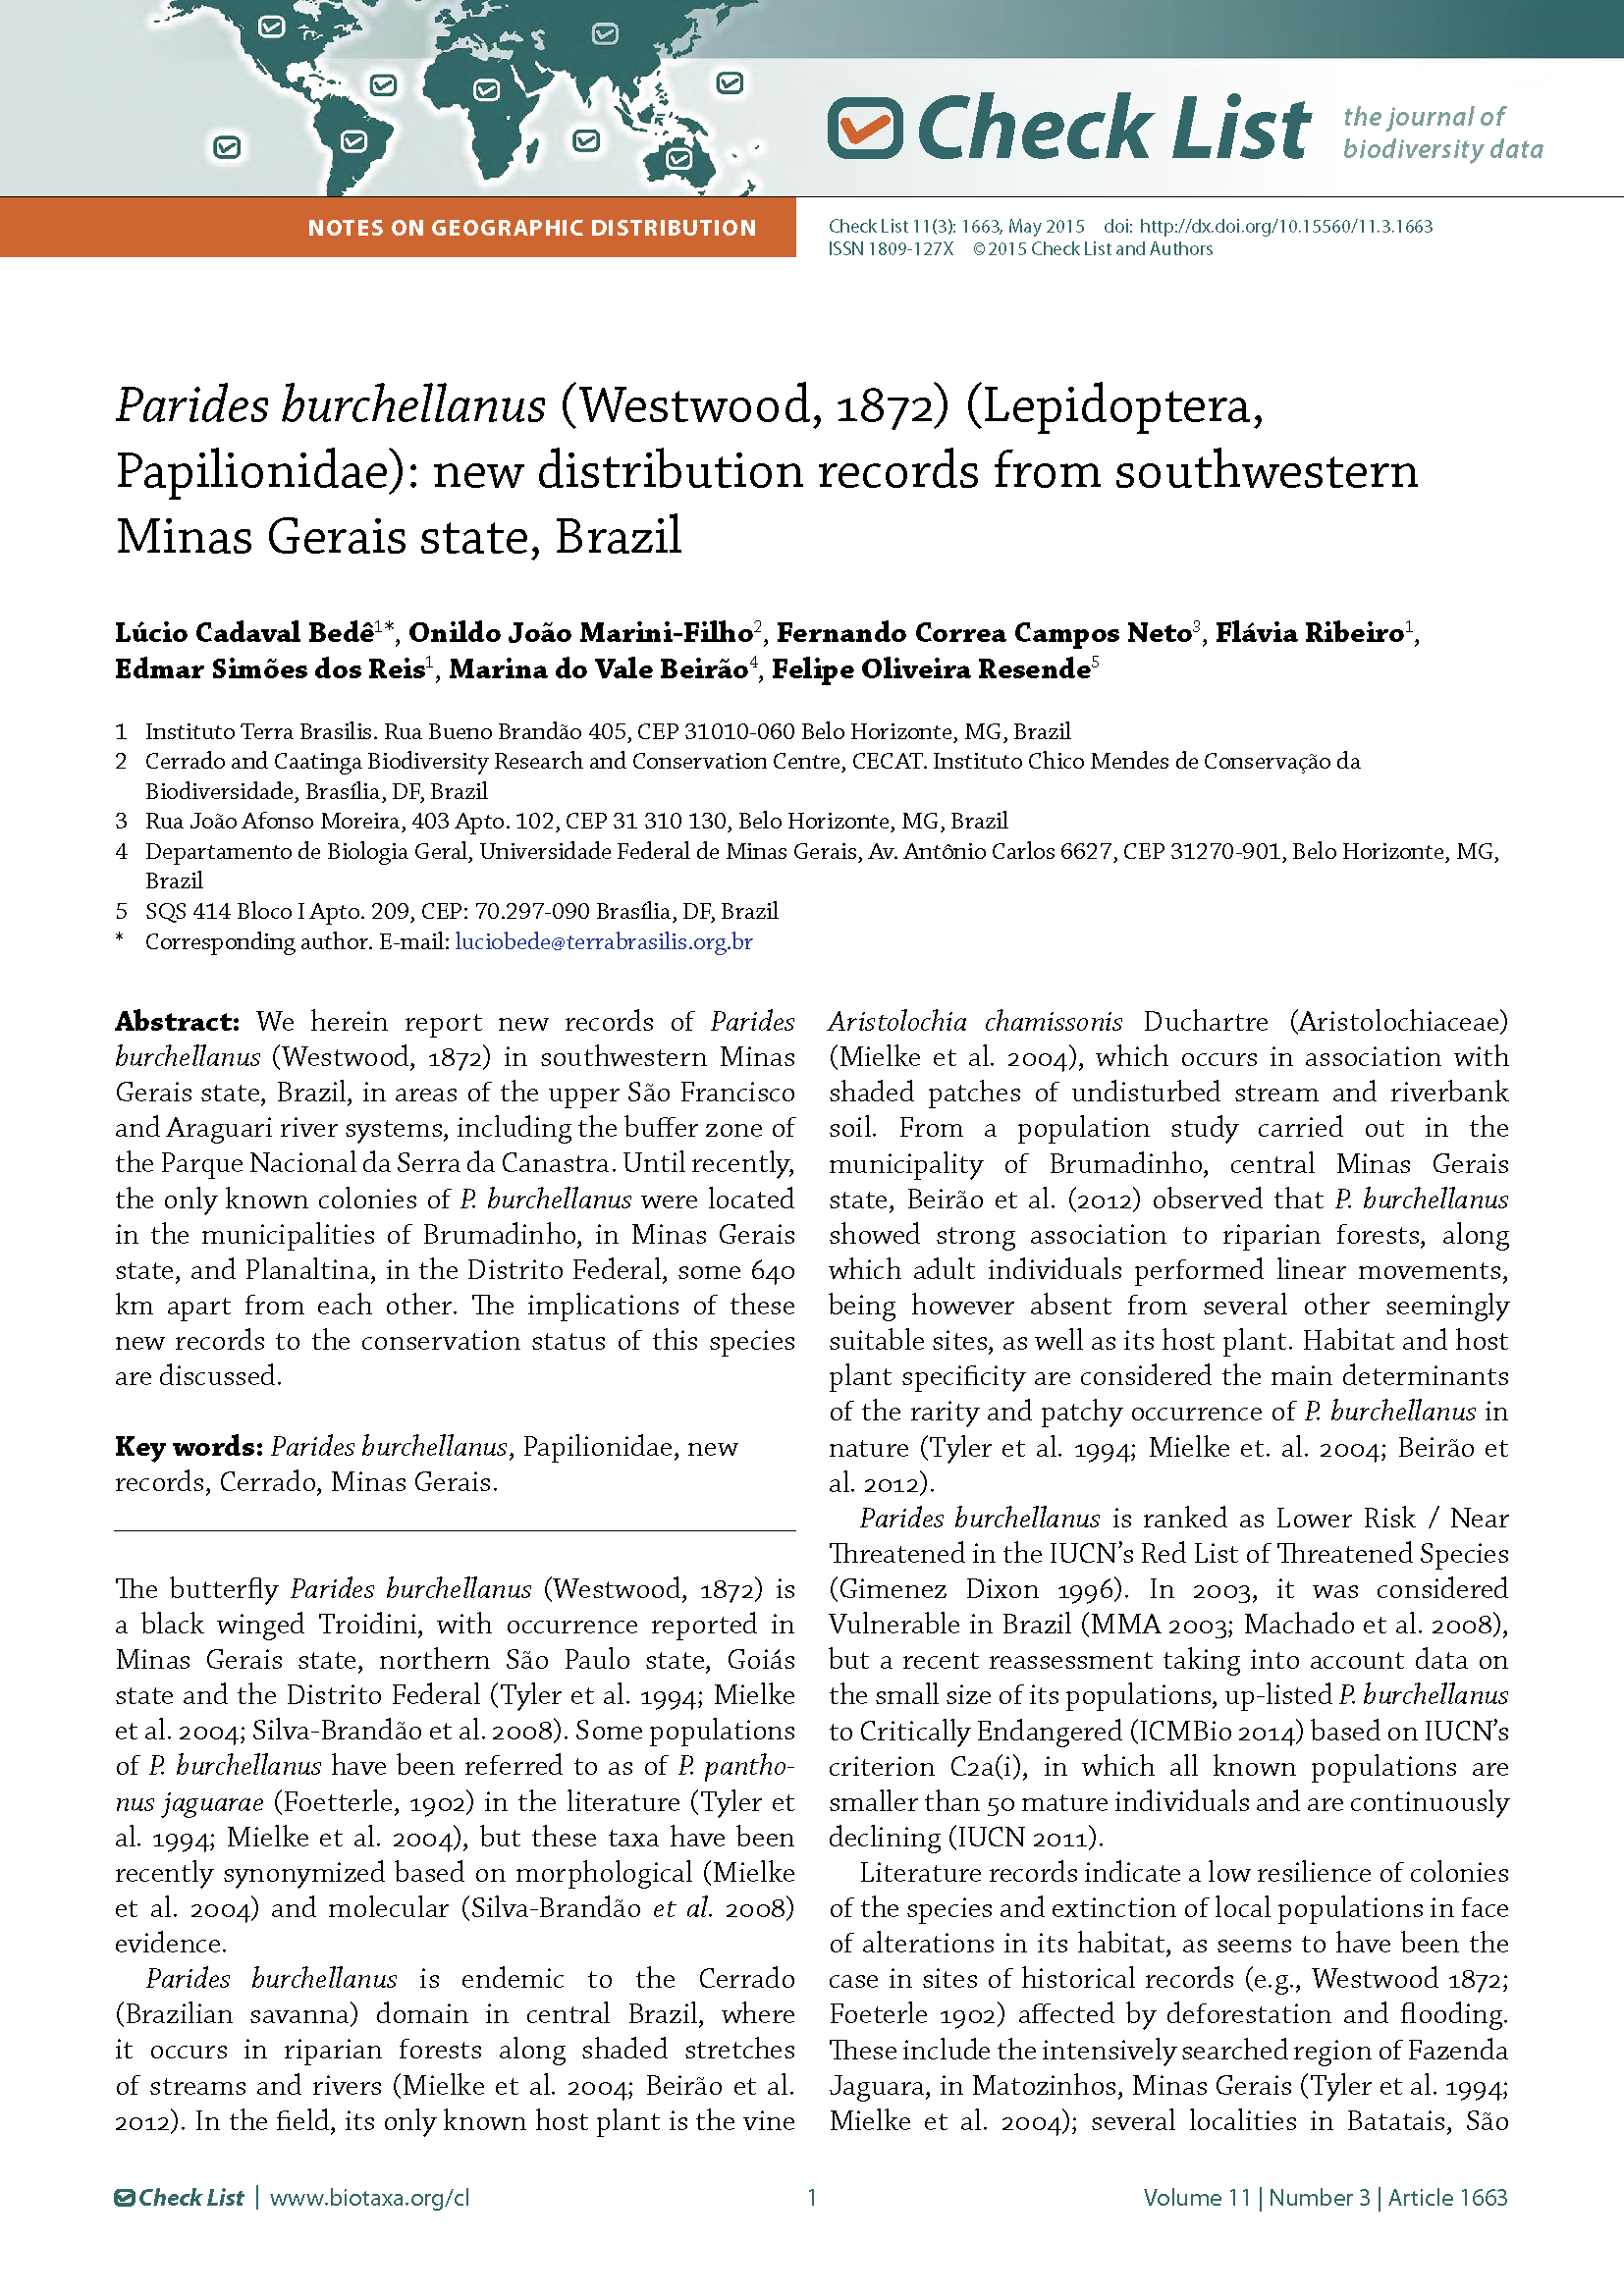 Capa da Parides burchellanus (Westwood, 1872) (Lepidoptera, Papilionidae): new distribution records from southwestern Minas Gerais state, Brazil